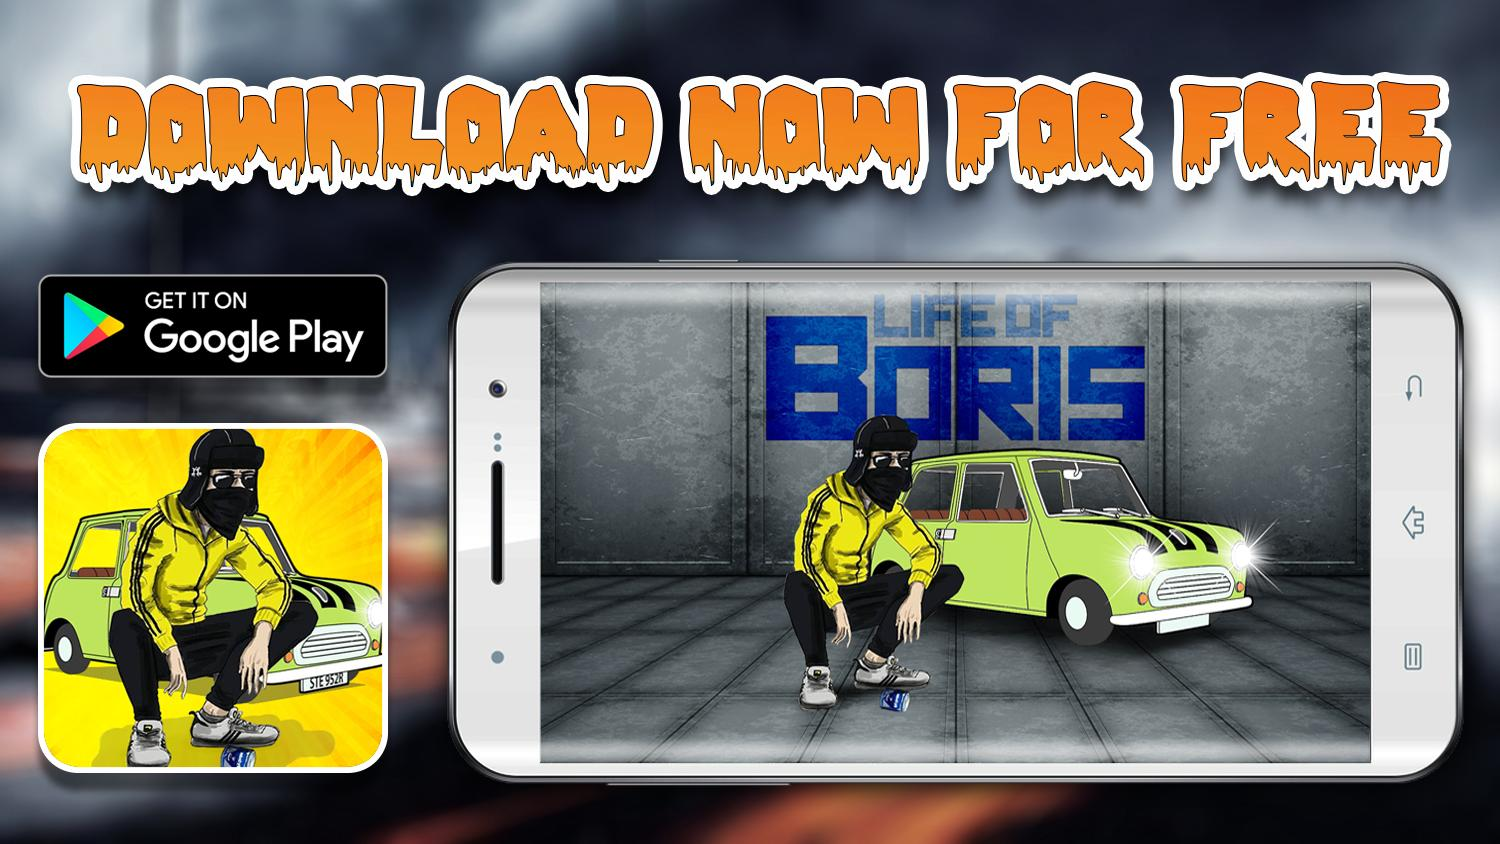 Life of Boris: Death Racing Game for Android - APK Download